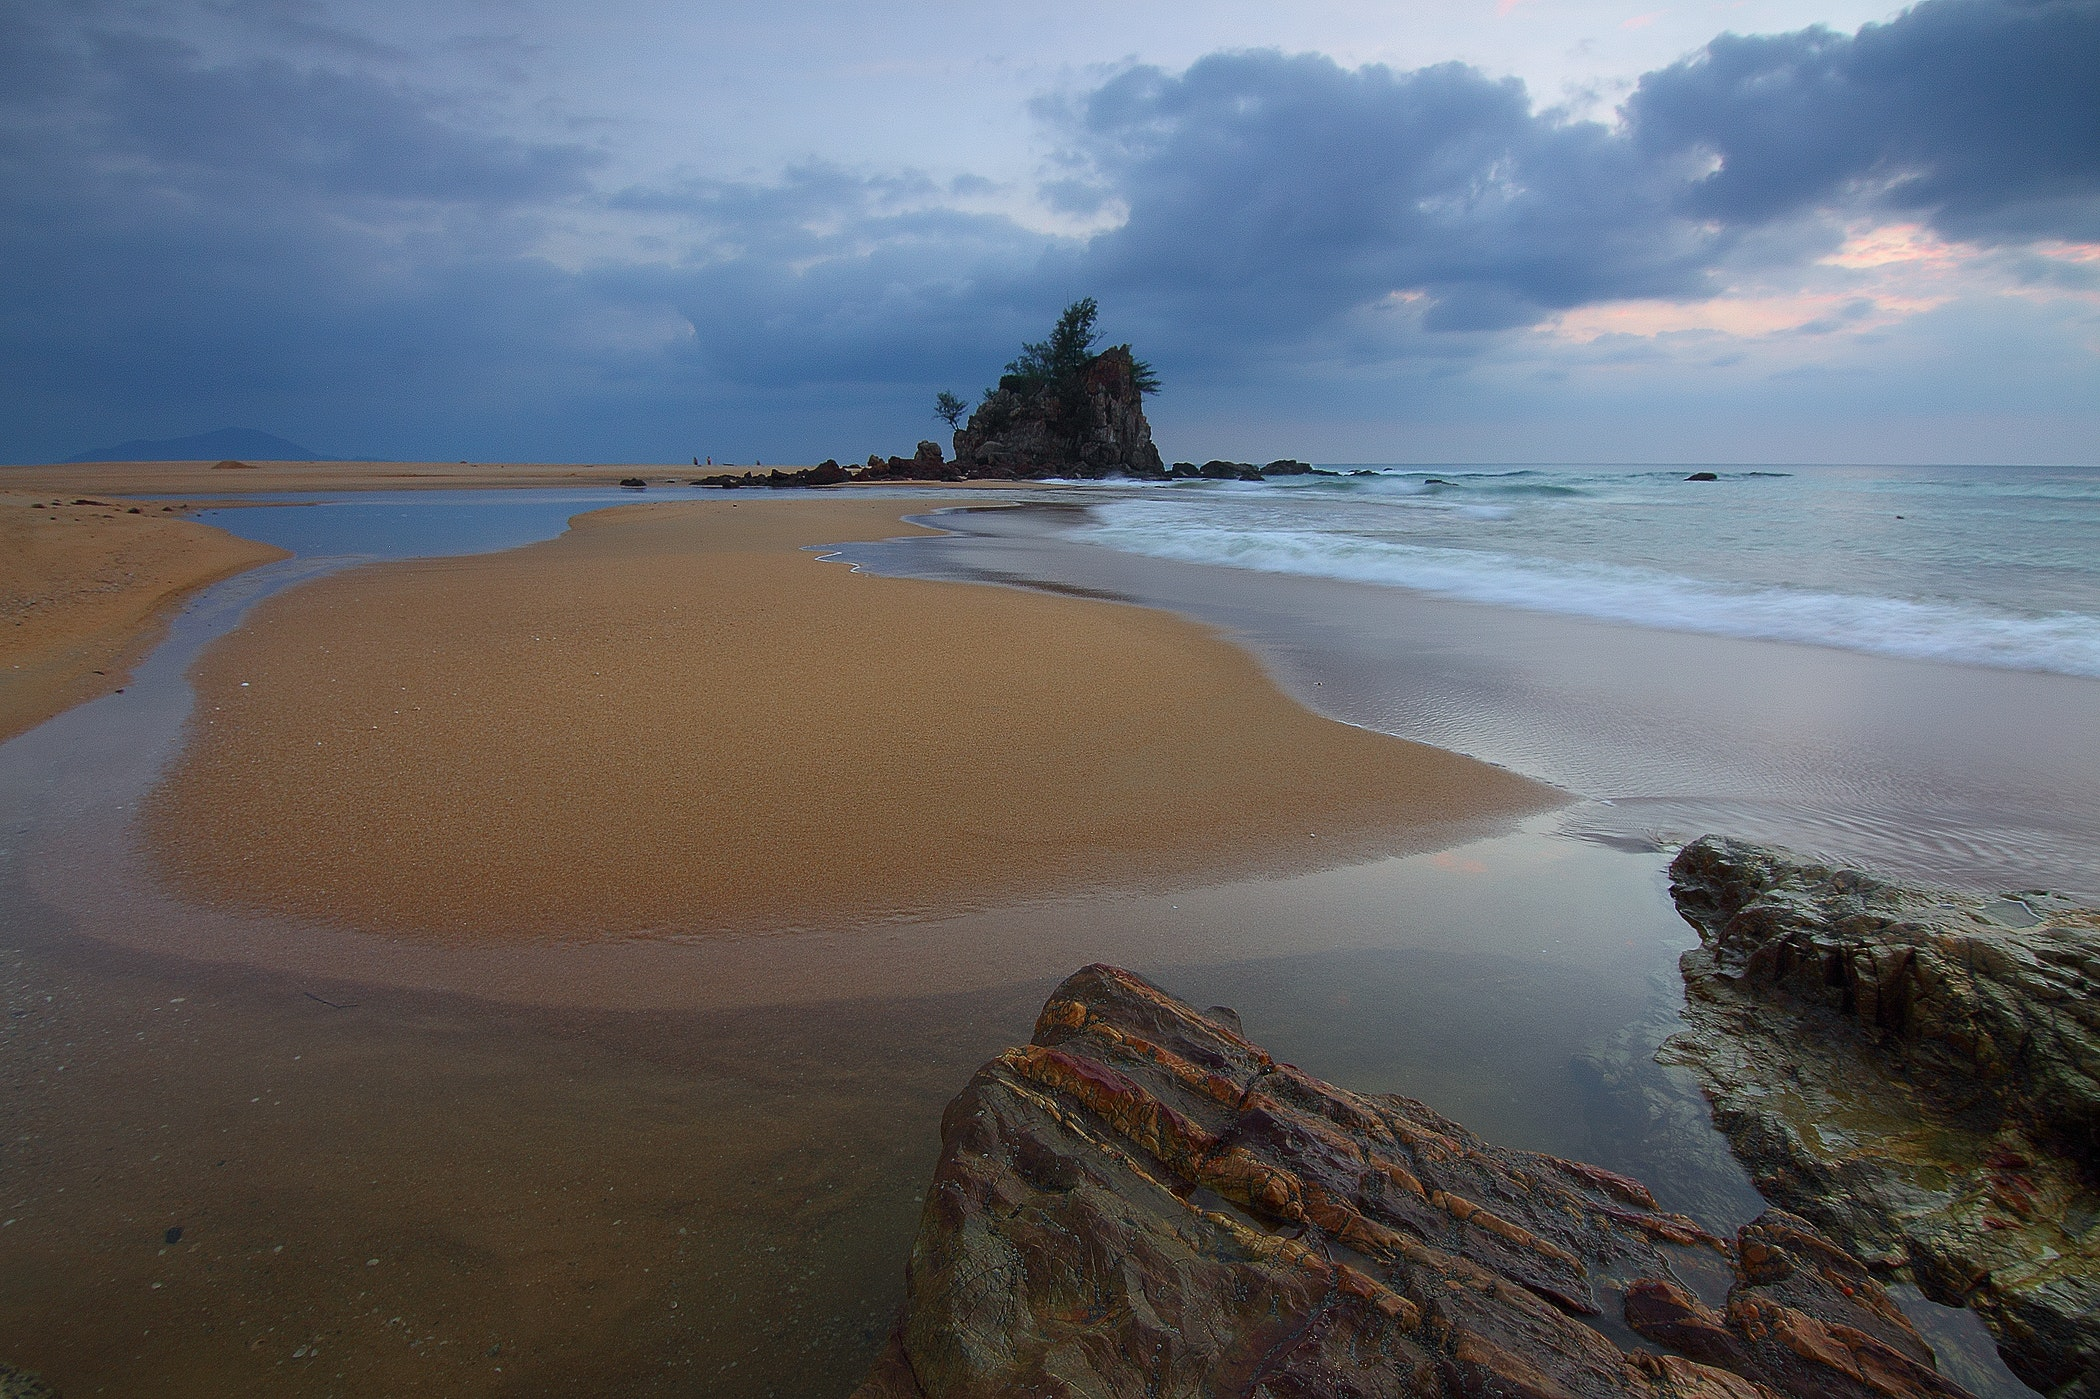 Sea wave crashing on seashore with view of rock formation with trees on top of it under grey clouds and white sky photo